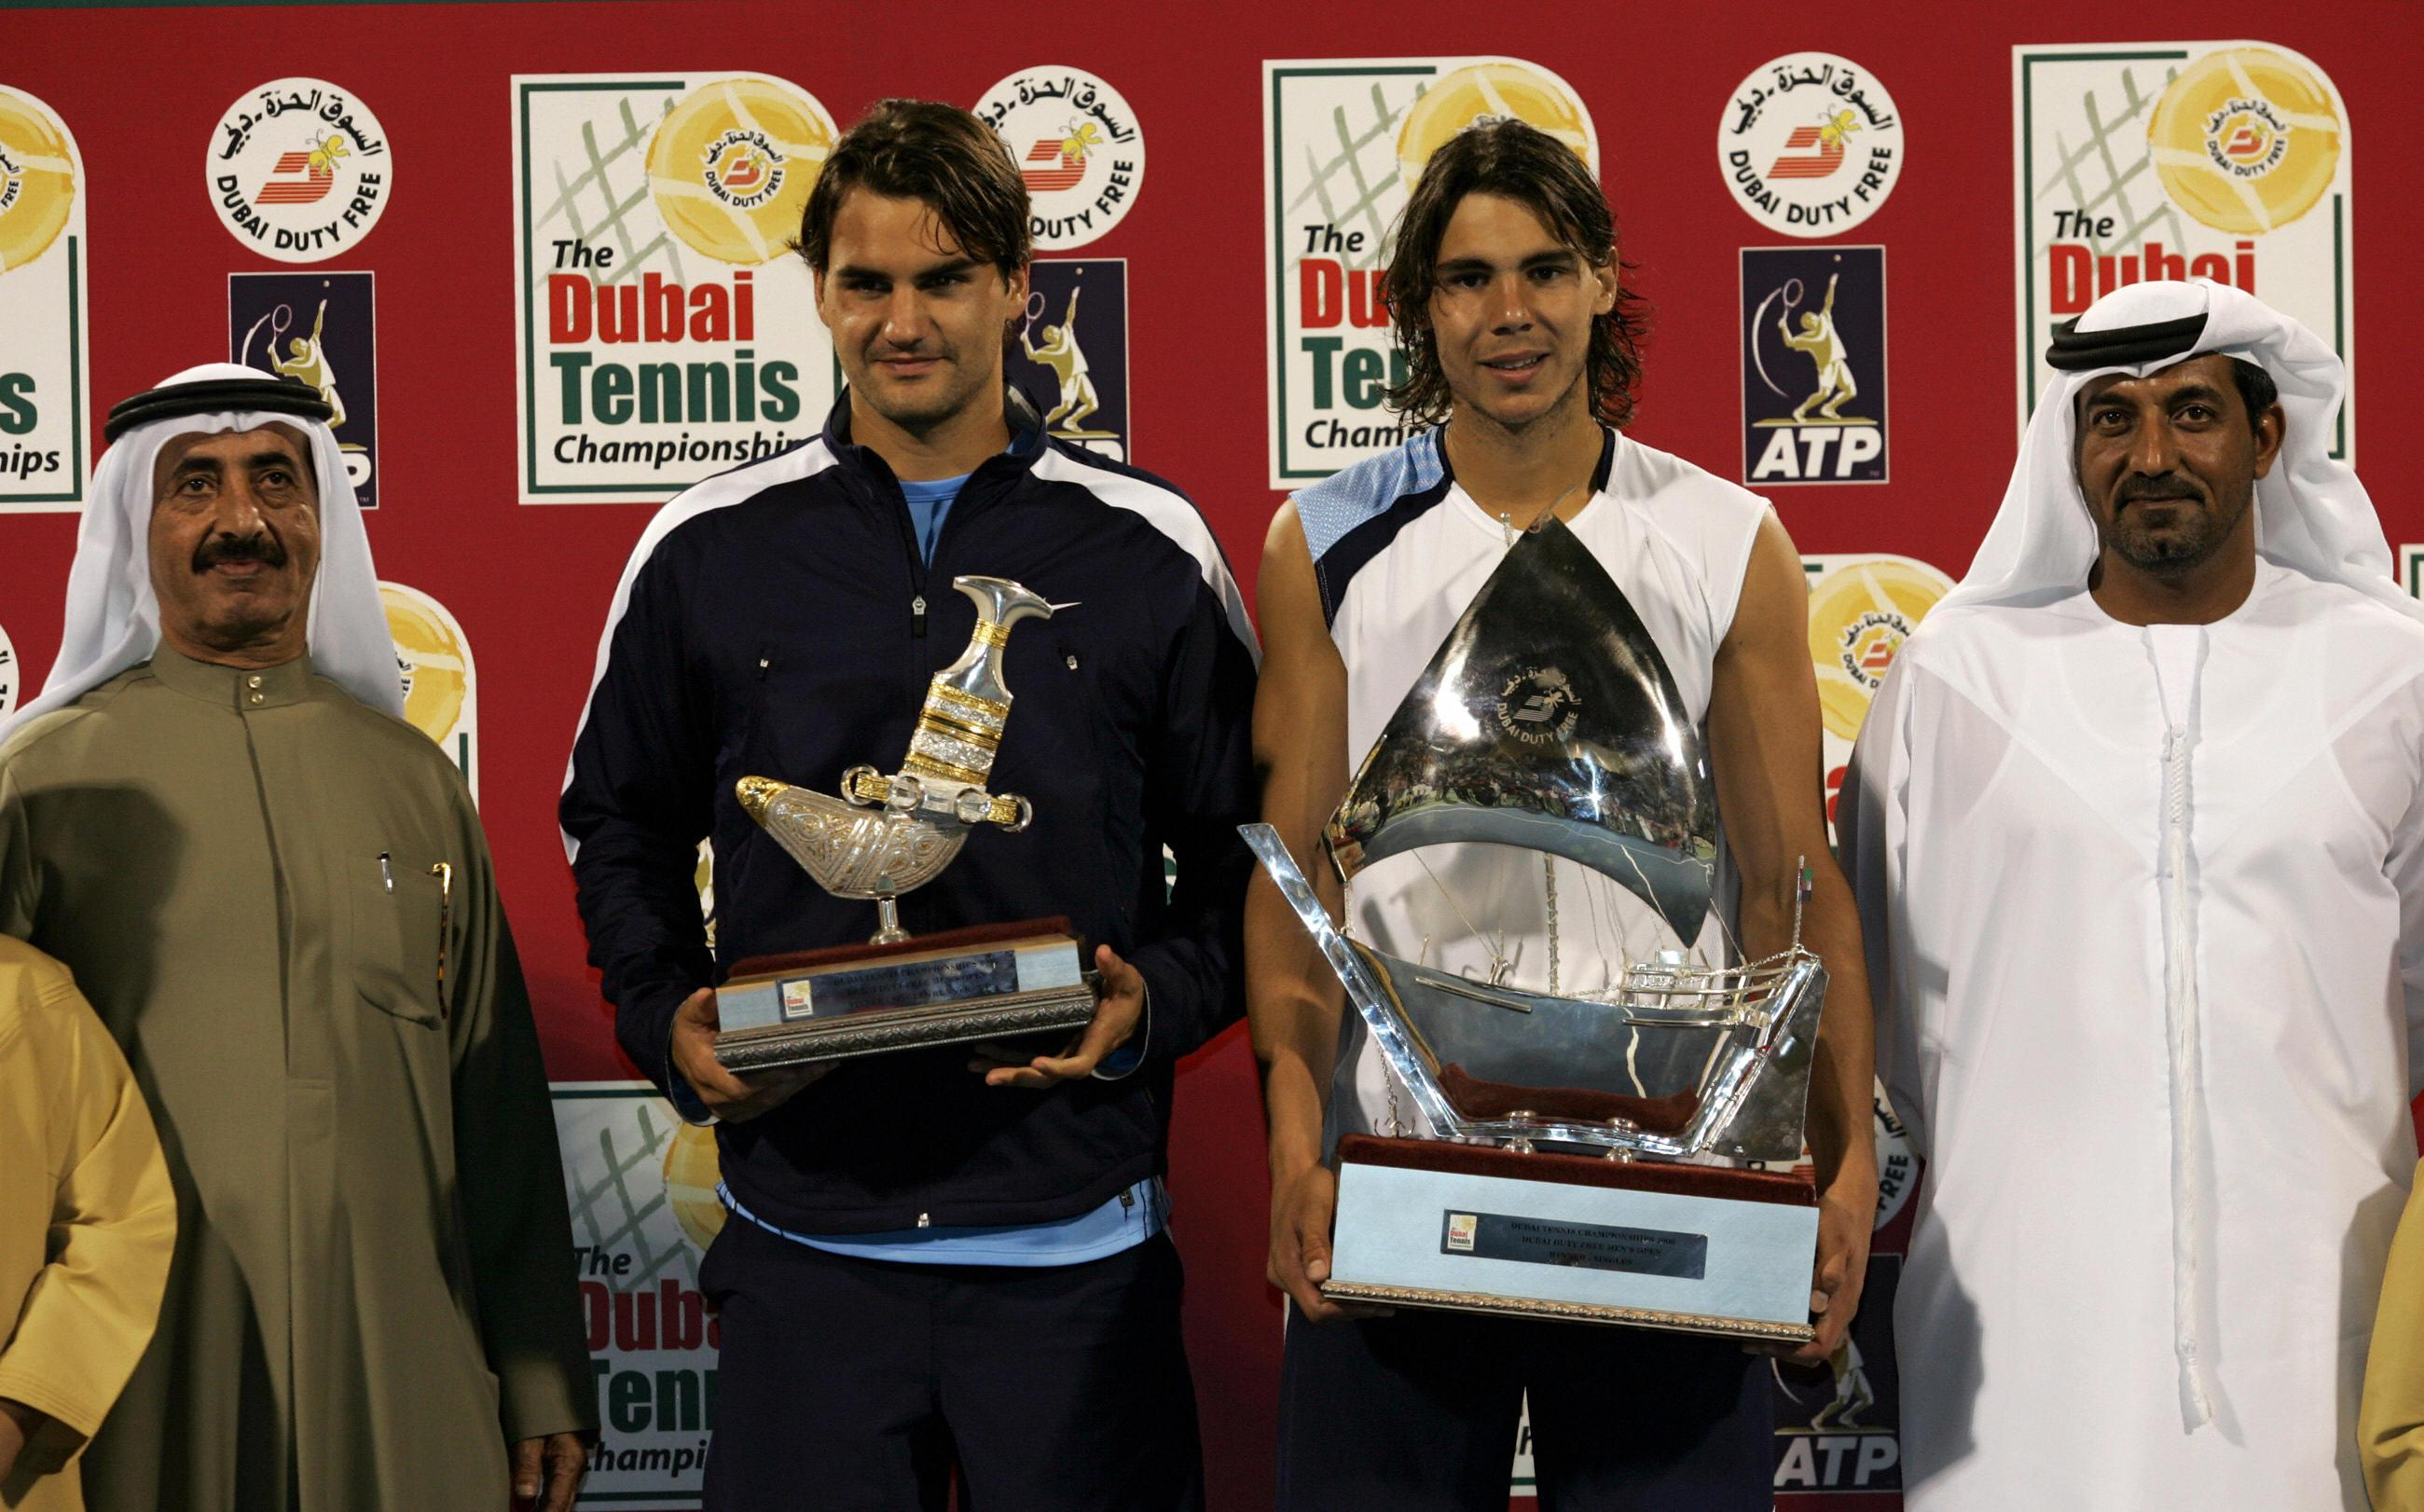 The winner and runner-up in the Dubai Tennis Open better have some room on the mantelpiece for these beauties